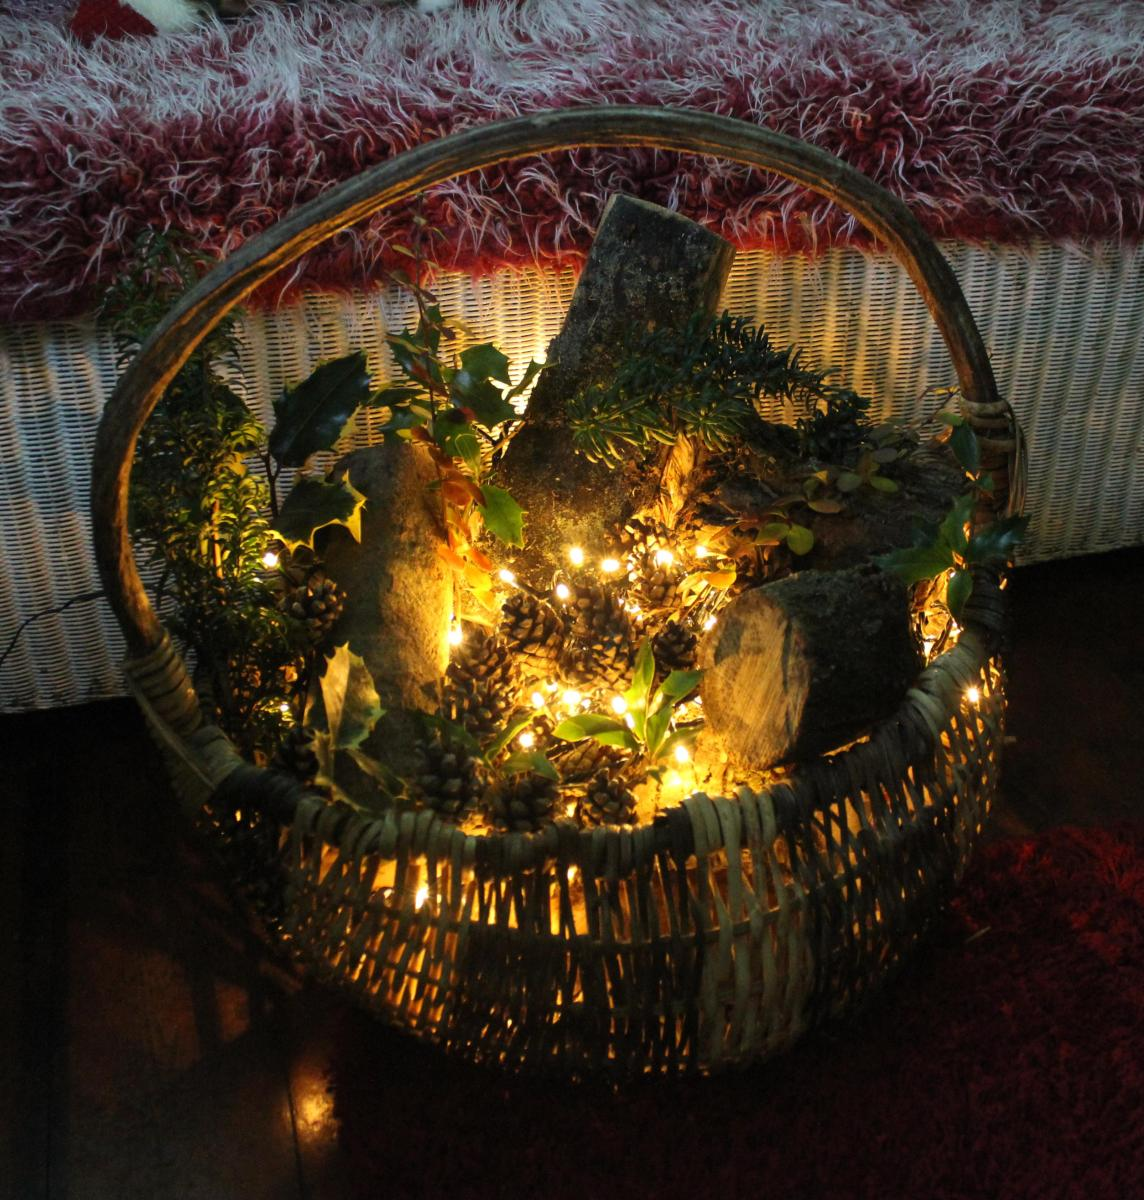 DIY project - Make a rustic basket decoration for Christmas